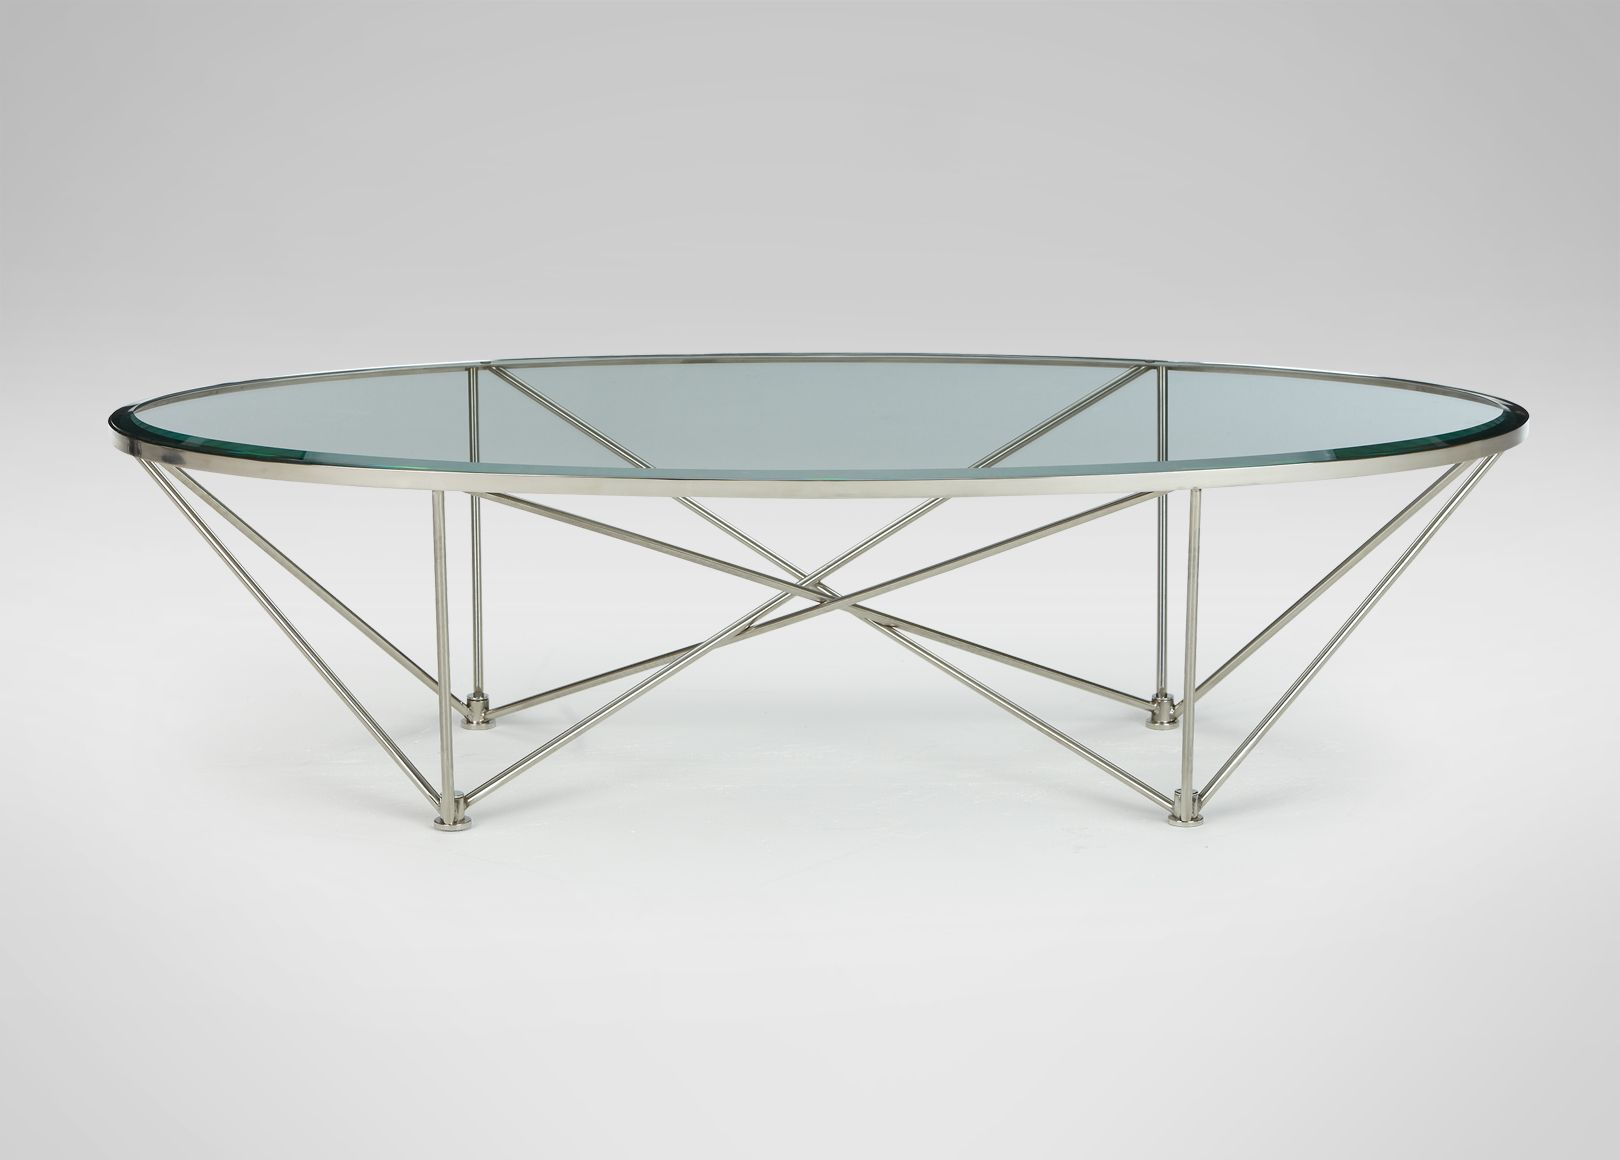 Kestral Oval Coffee Table Polished Steel Clearance Oval Coffee Tables Coffee Table Small Coffee Table [ 1160 x 1620 Pixel ]